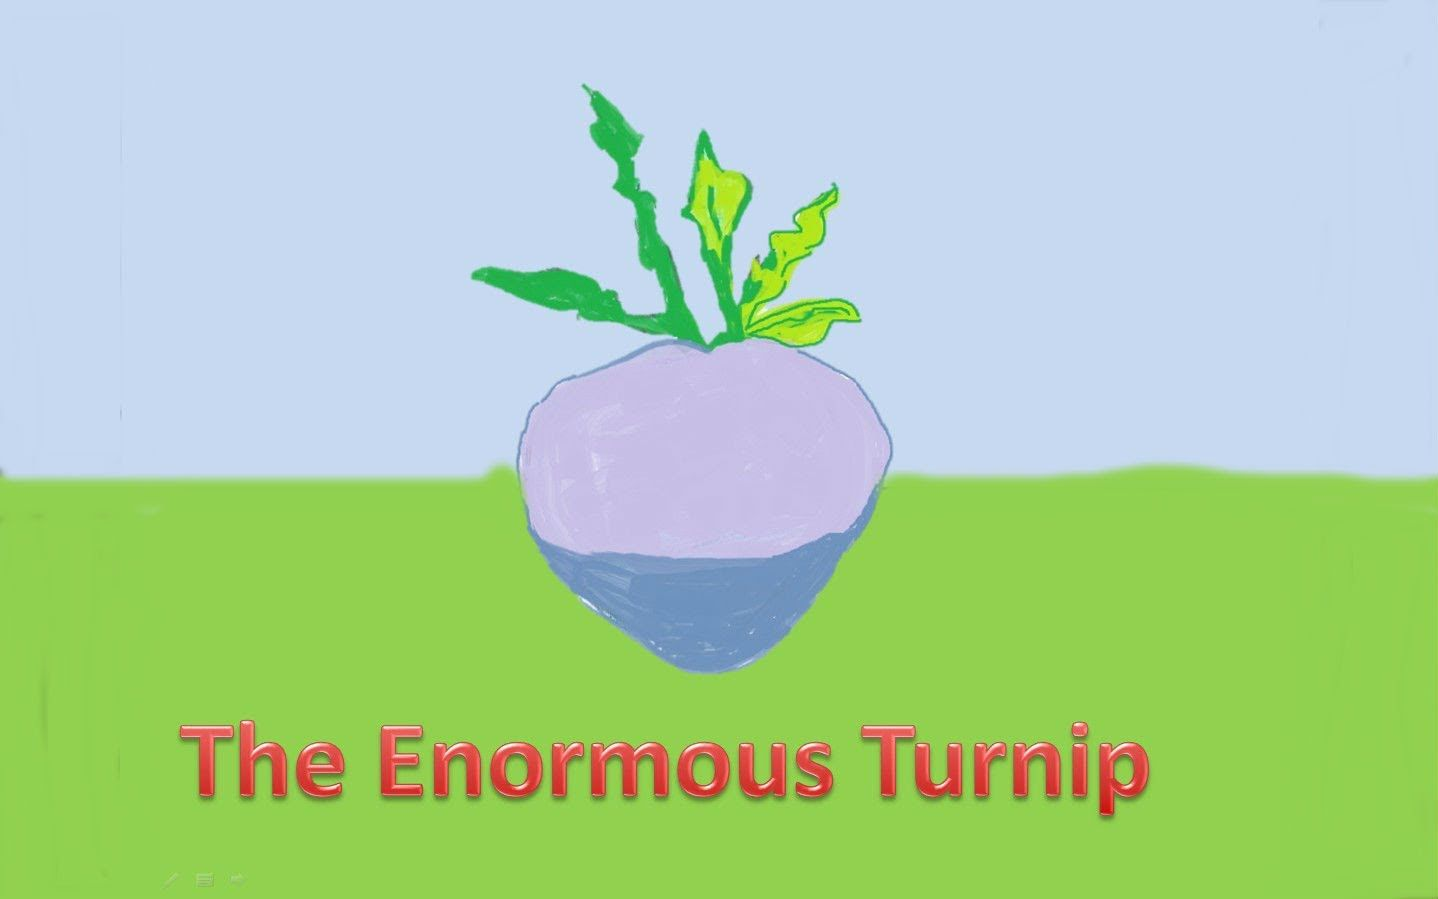 Workbooks the enormous turnip worksheets : The enormous turnip - A song for children | Science - Forces ...